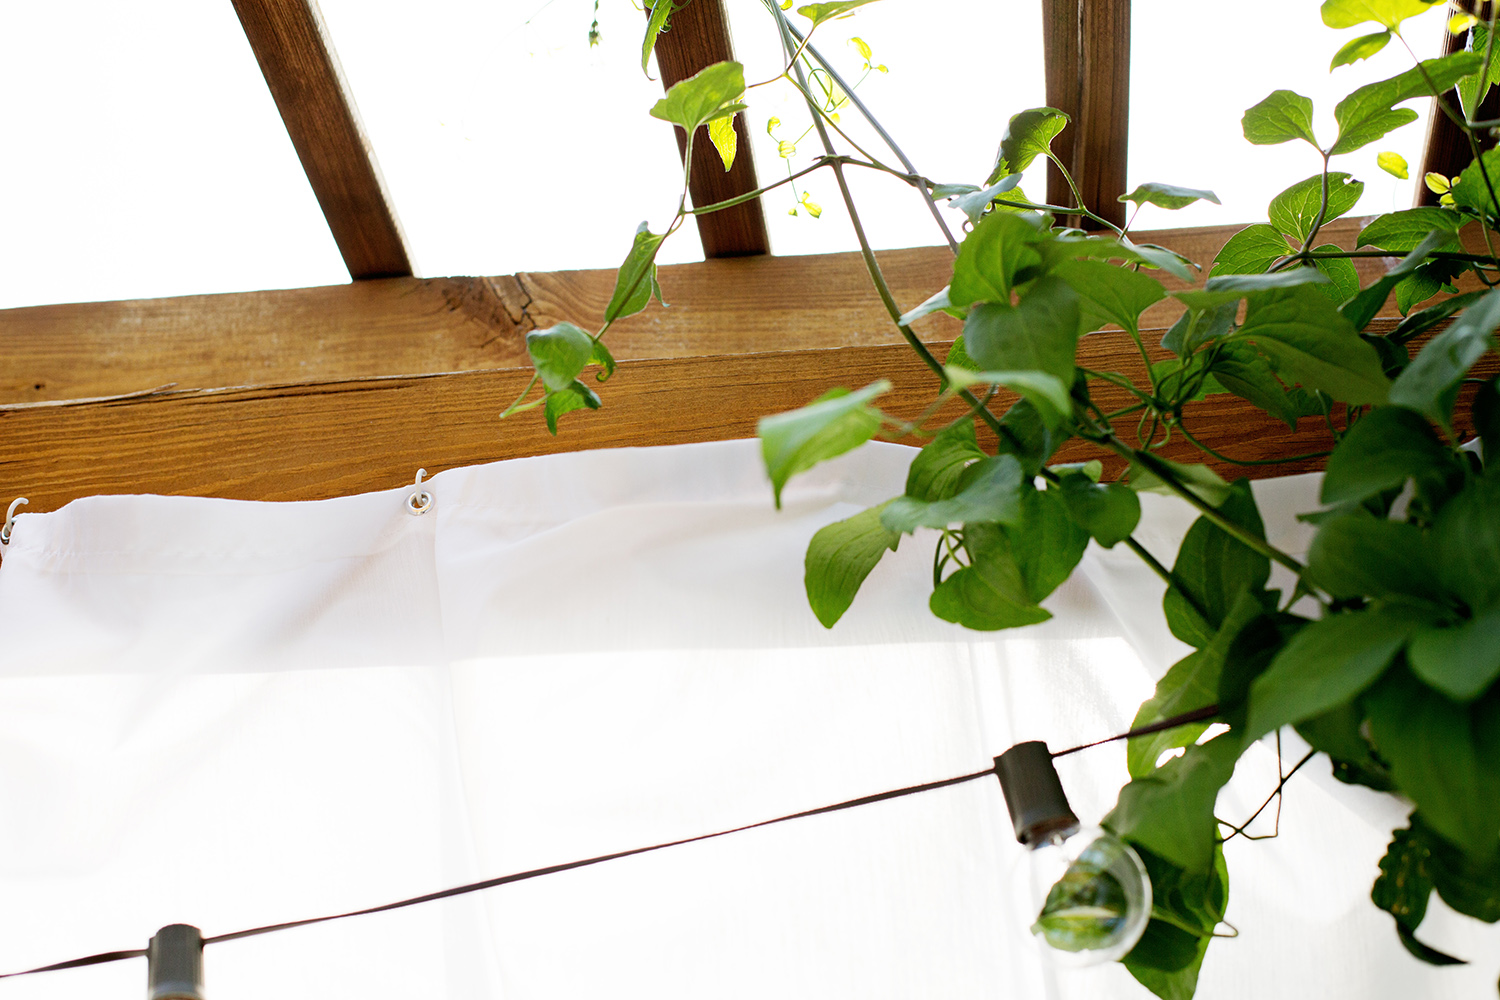 Make your own outdoor pergola curtains a beautiful mess - Make Your Own Outdoor Pergola Curtains A Beautiful Mess